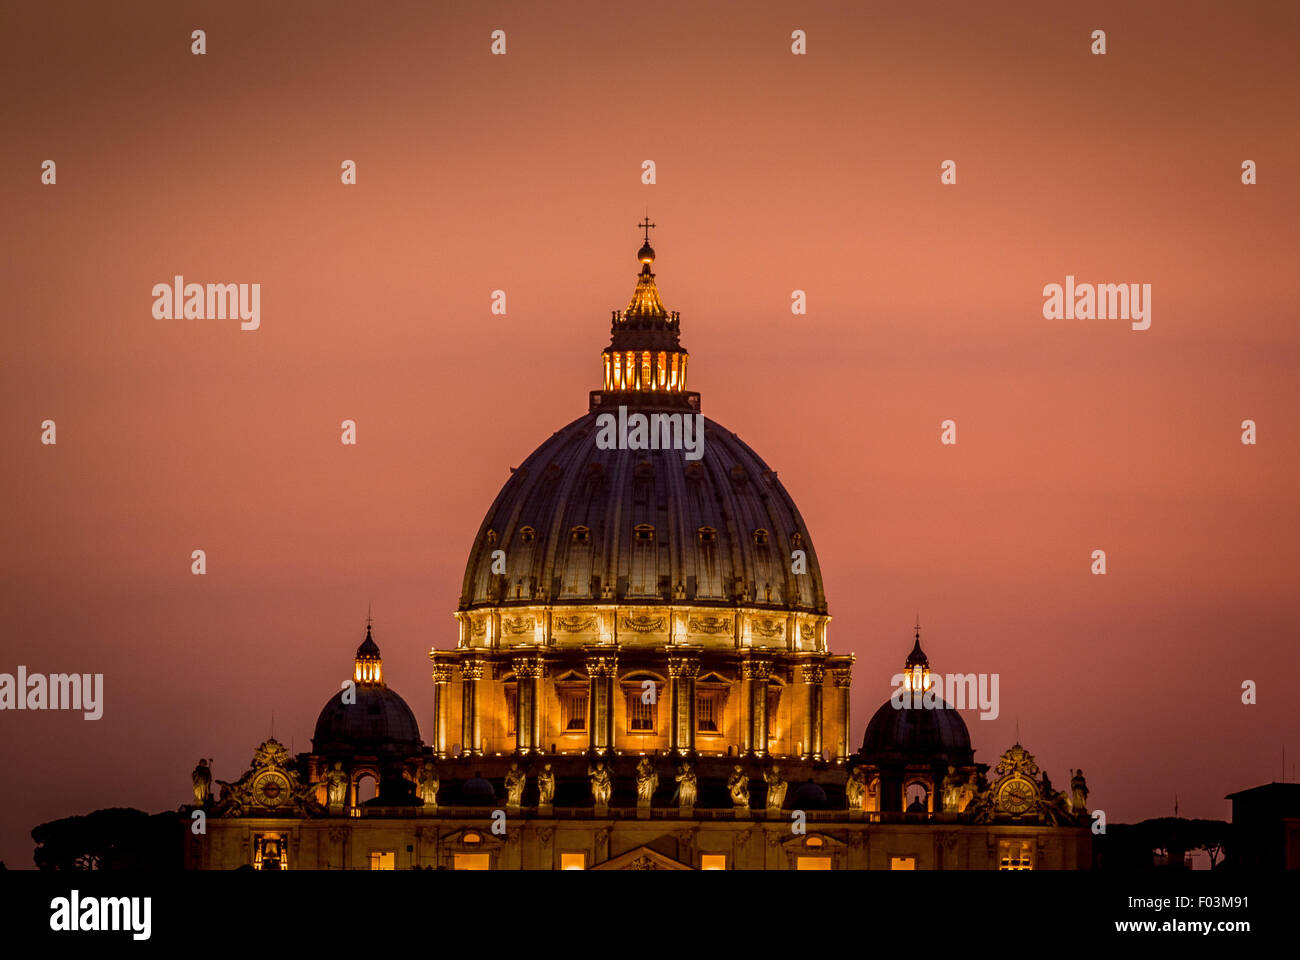 St Peter's Basilica. Vatican City at night, Rome. Italy. - Stock Image